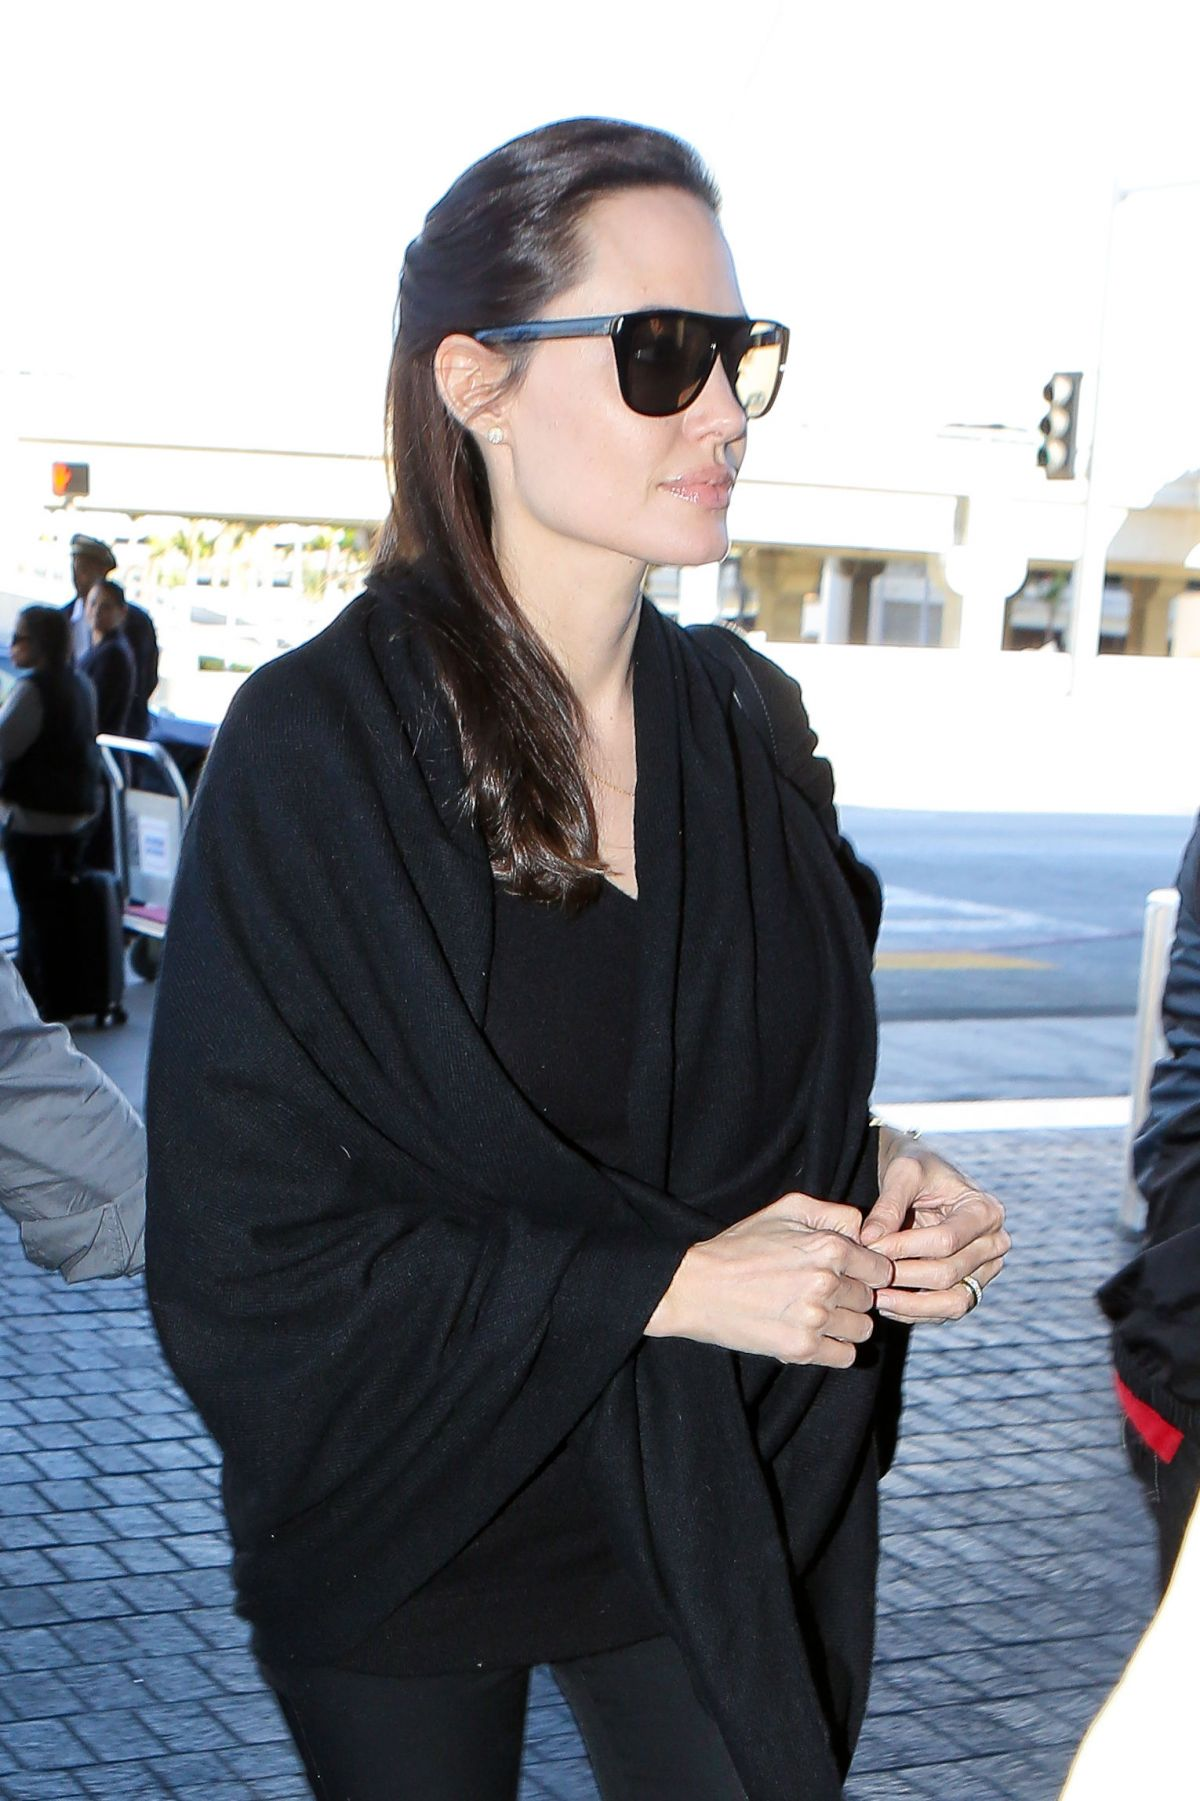 ANGELINA JOLIE at LAX Airport in Los Angeles